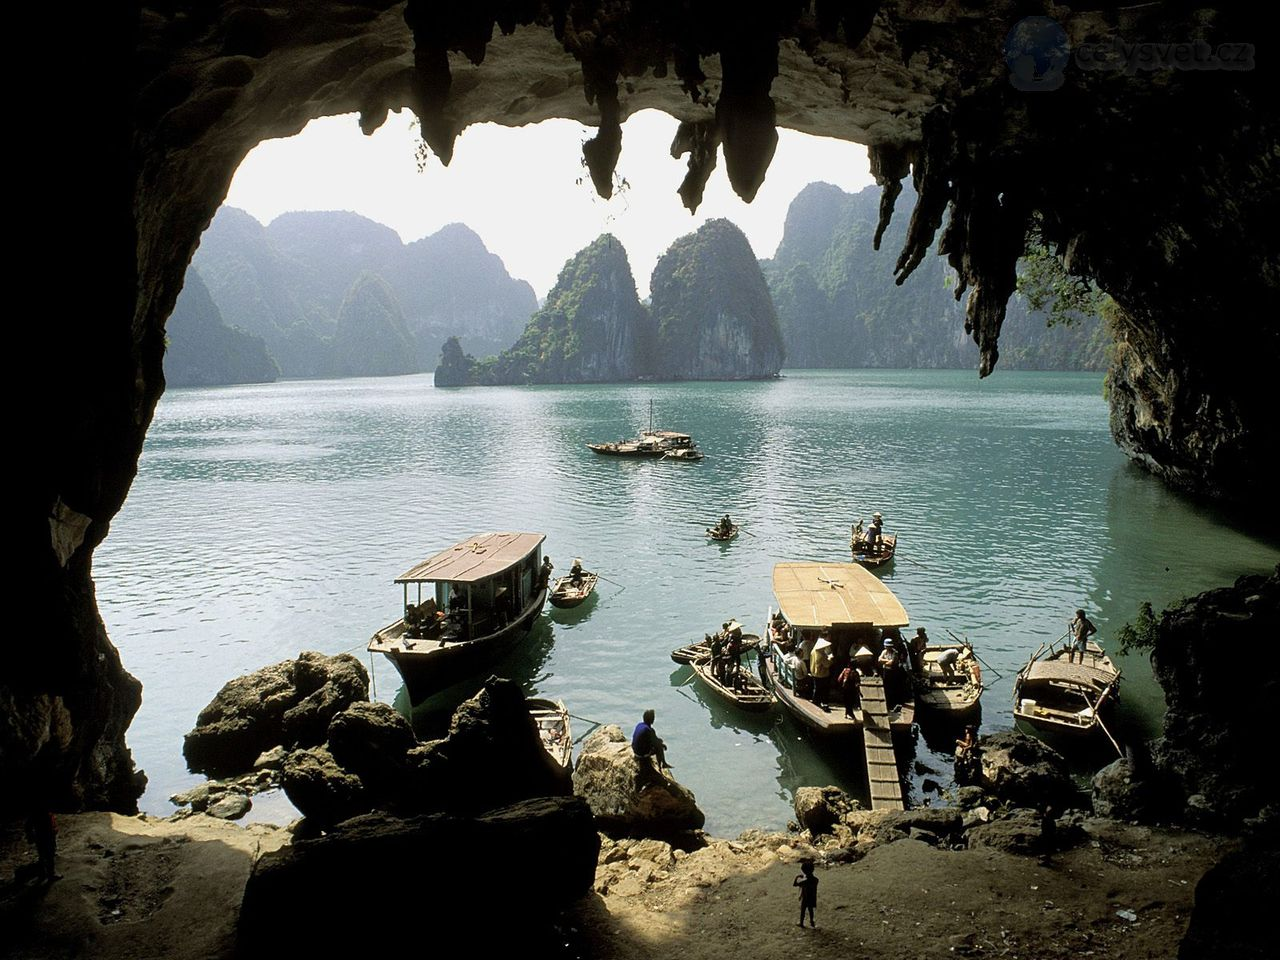 Vinh Vietnam  city photos : Vinh Ha Long jeskyně, Vietnam / Vinh Ha Long Grotto, Vietnam